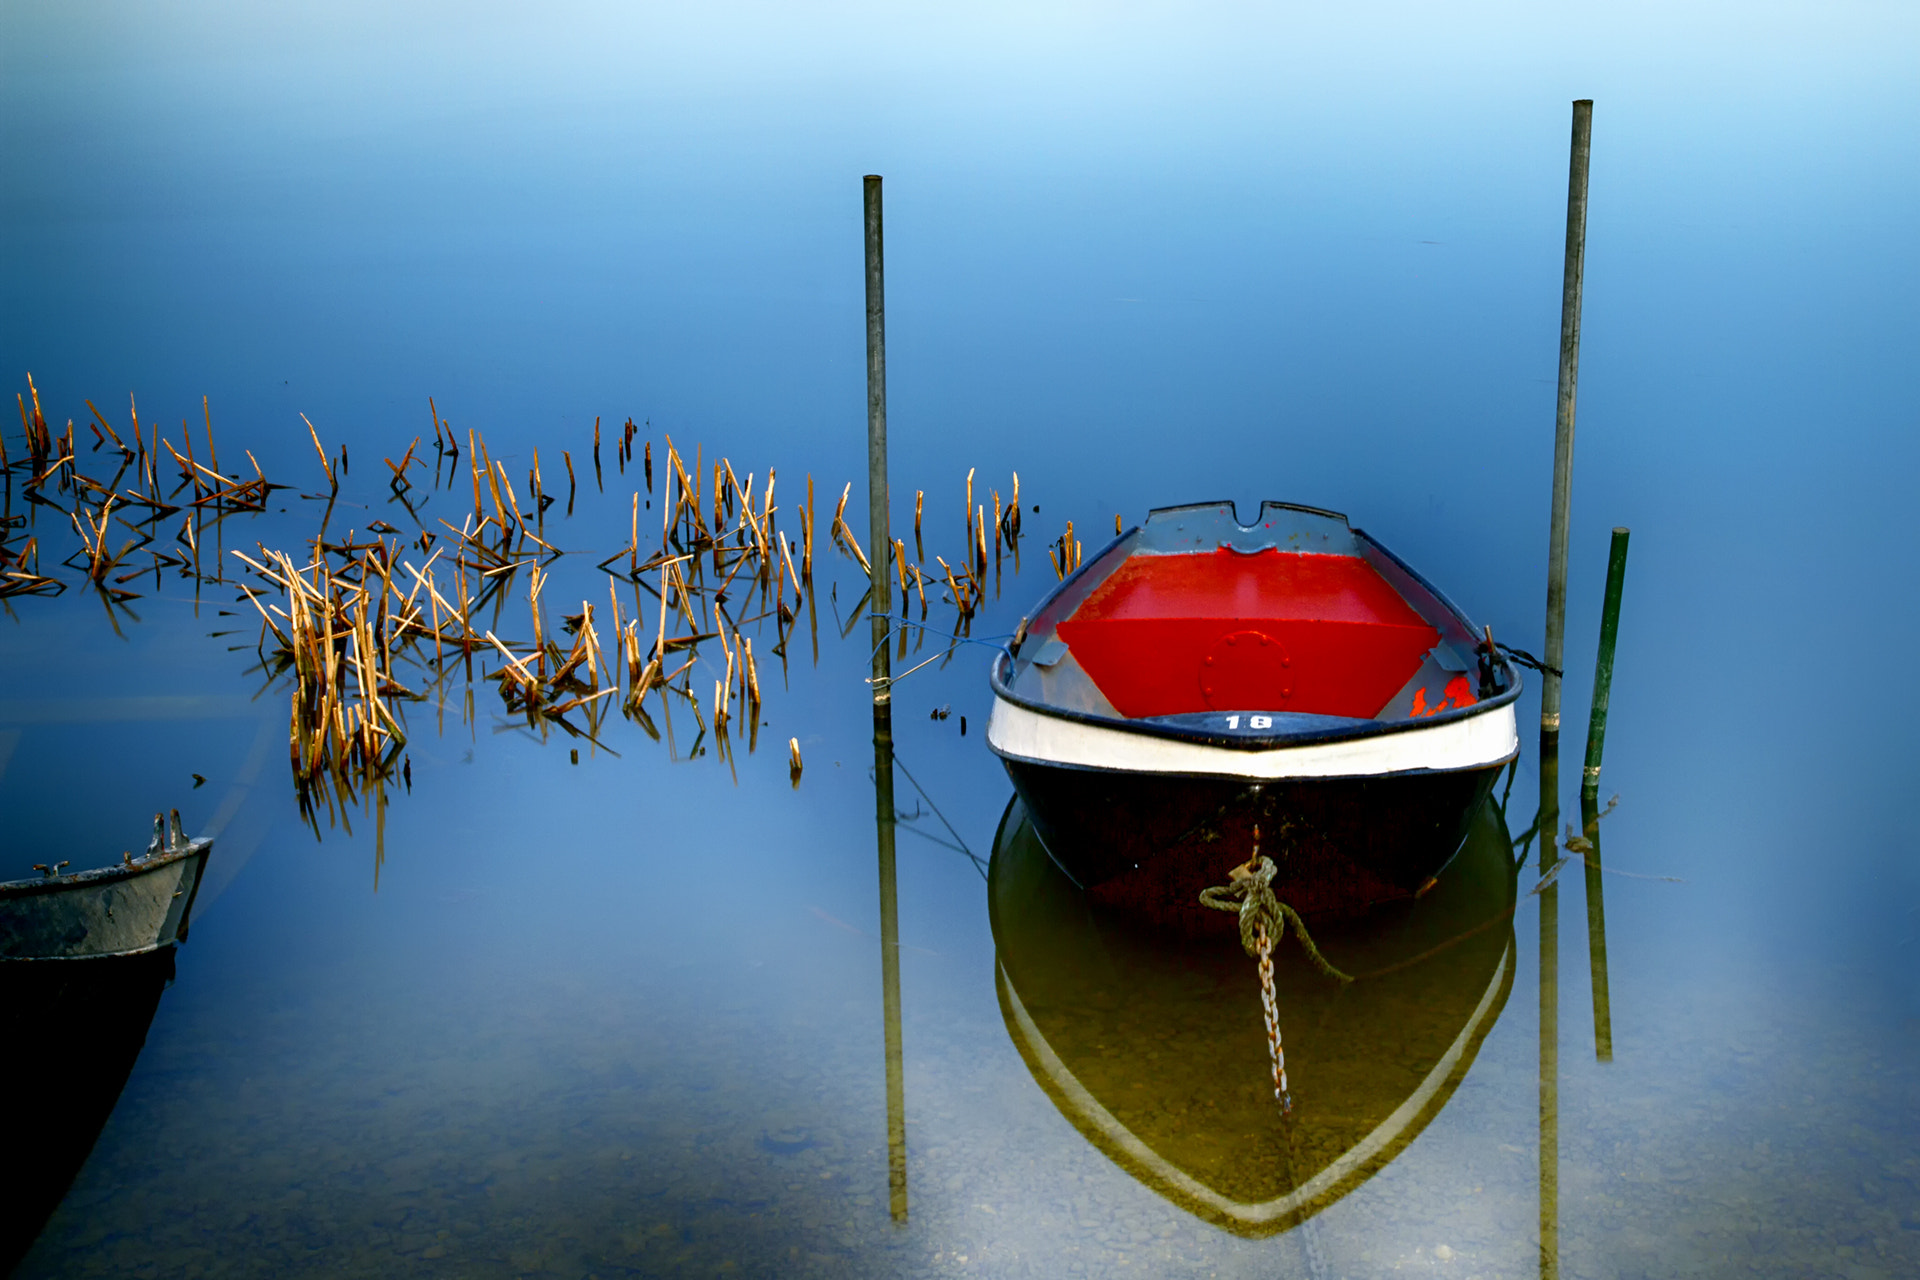 Photograph Waiting for the fishermen by Kees Smans on 500px